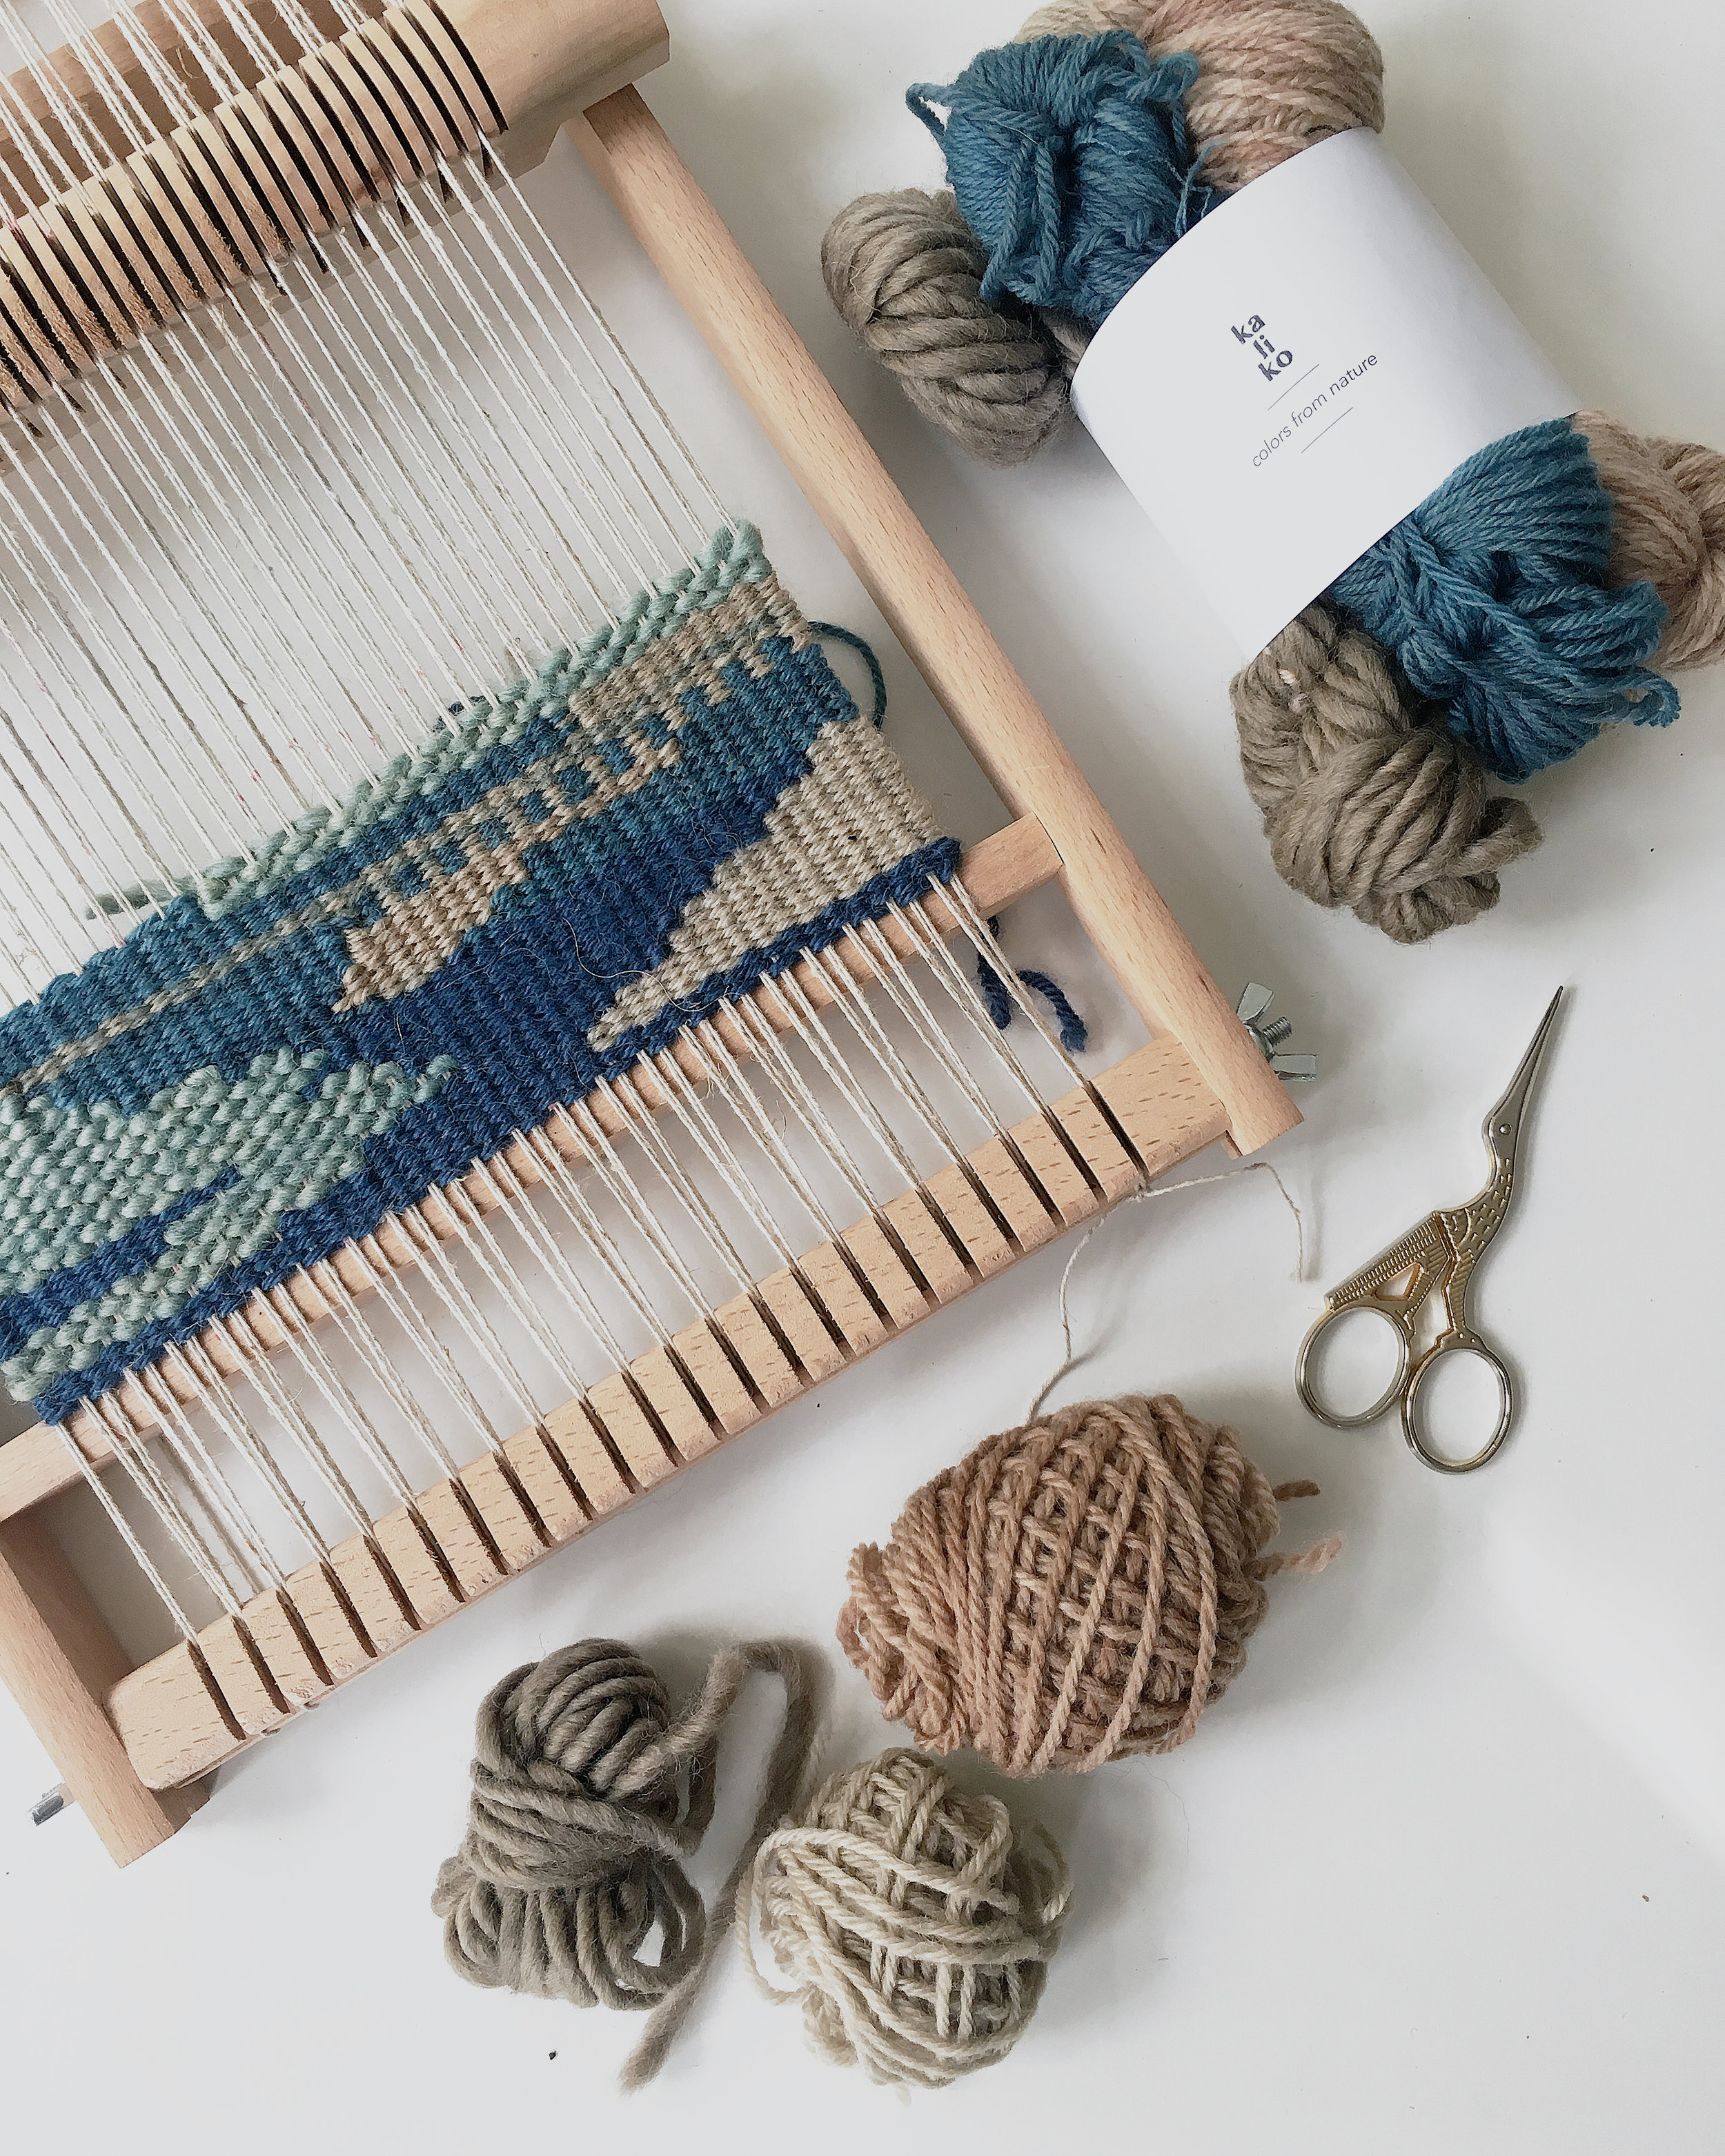 Free weaving this weekend. No rules no plan no expectations, just weaving!